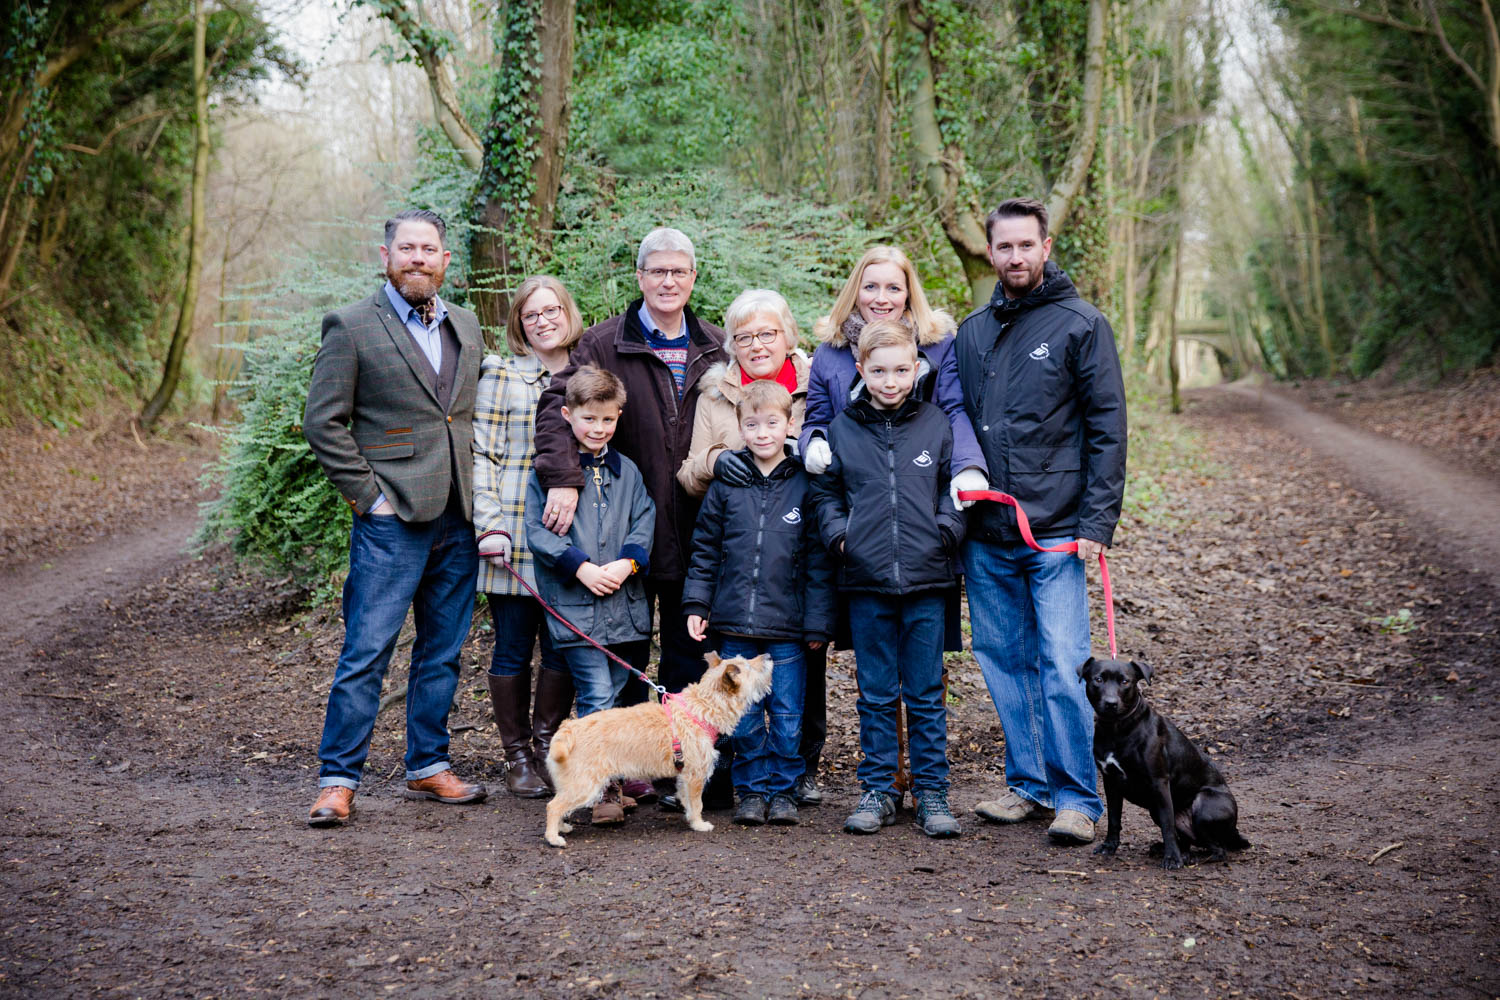 yorkshire-family-children-photoshoot-photographer-wetherby-winte